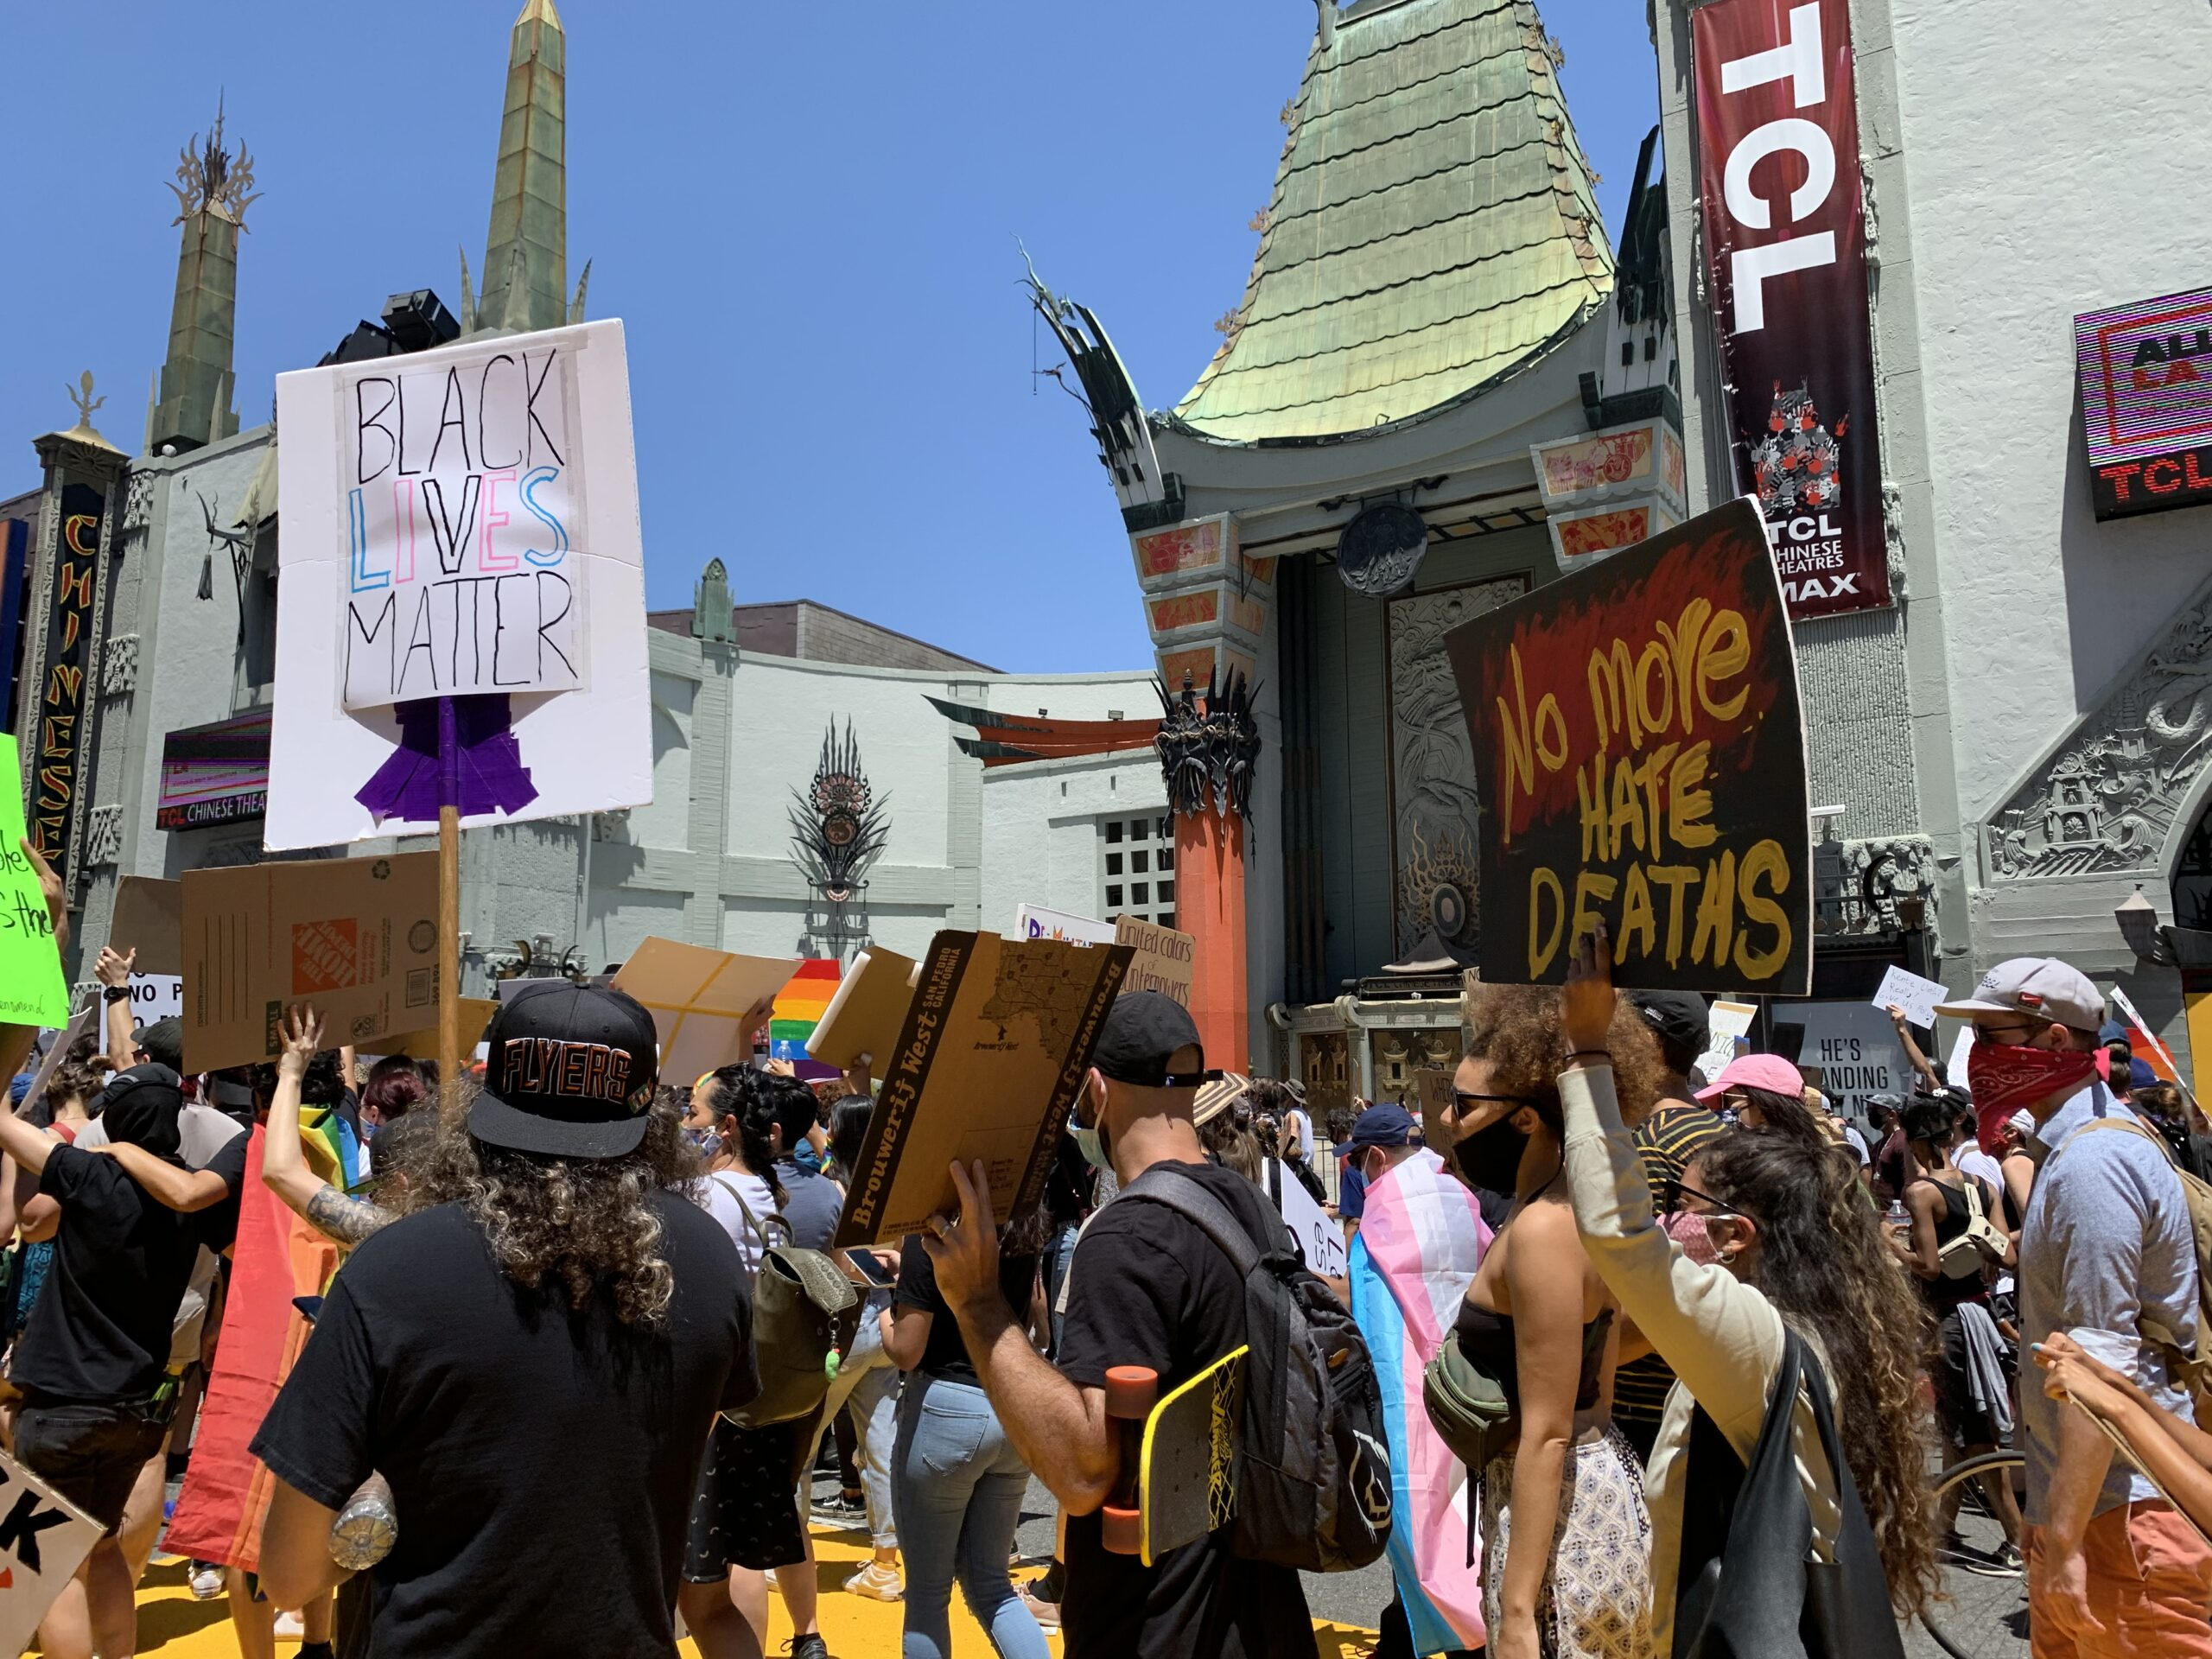 A group of protestors gather to march through the streets of Los Angeles, California